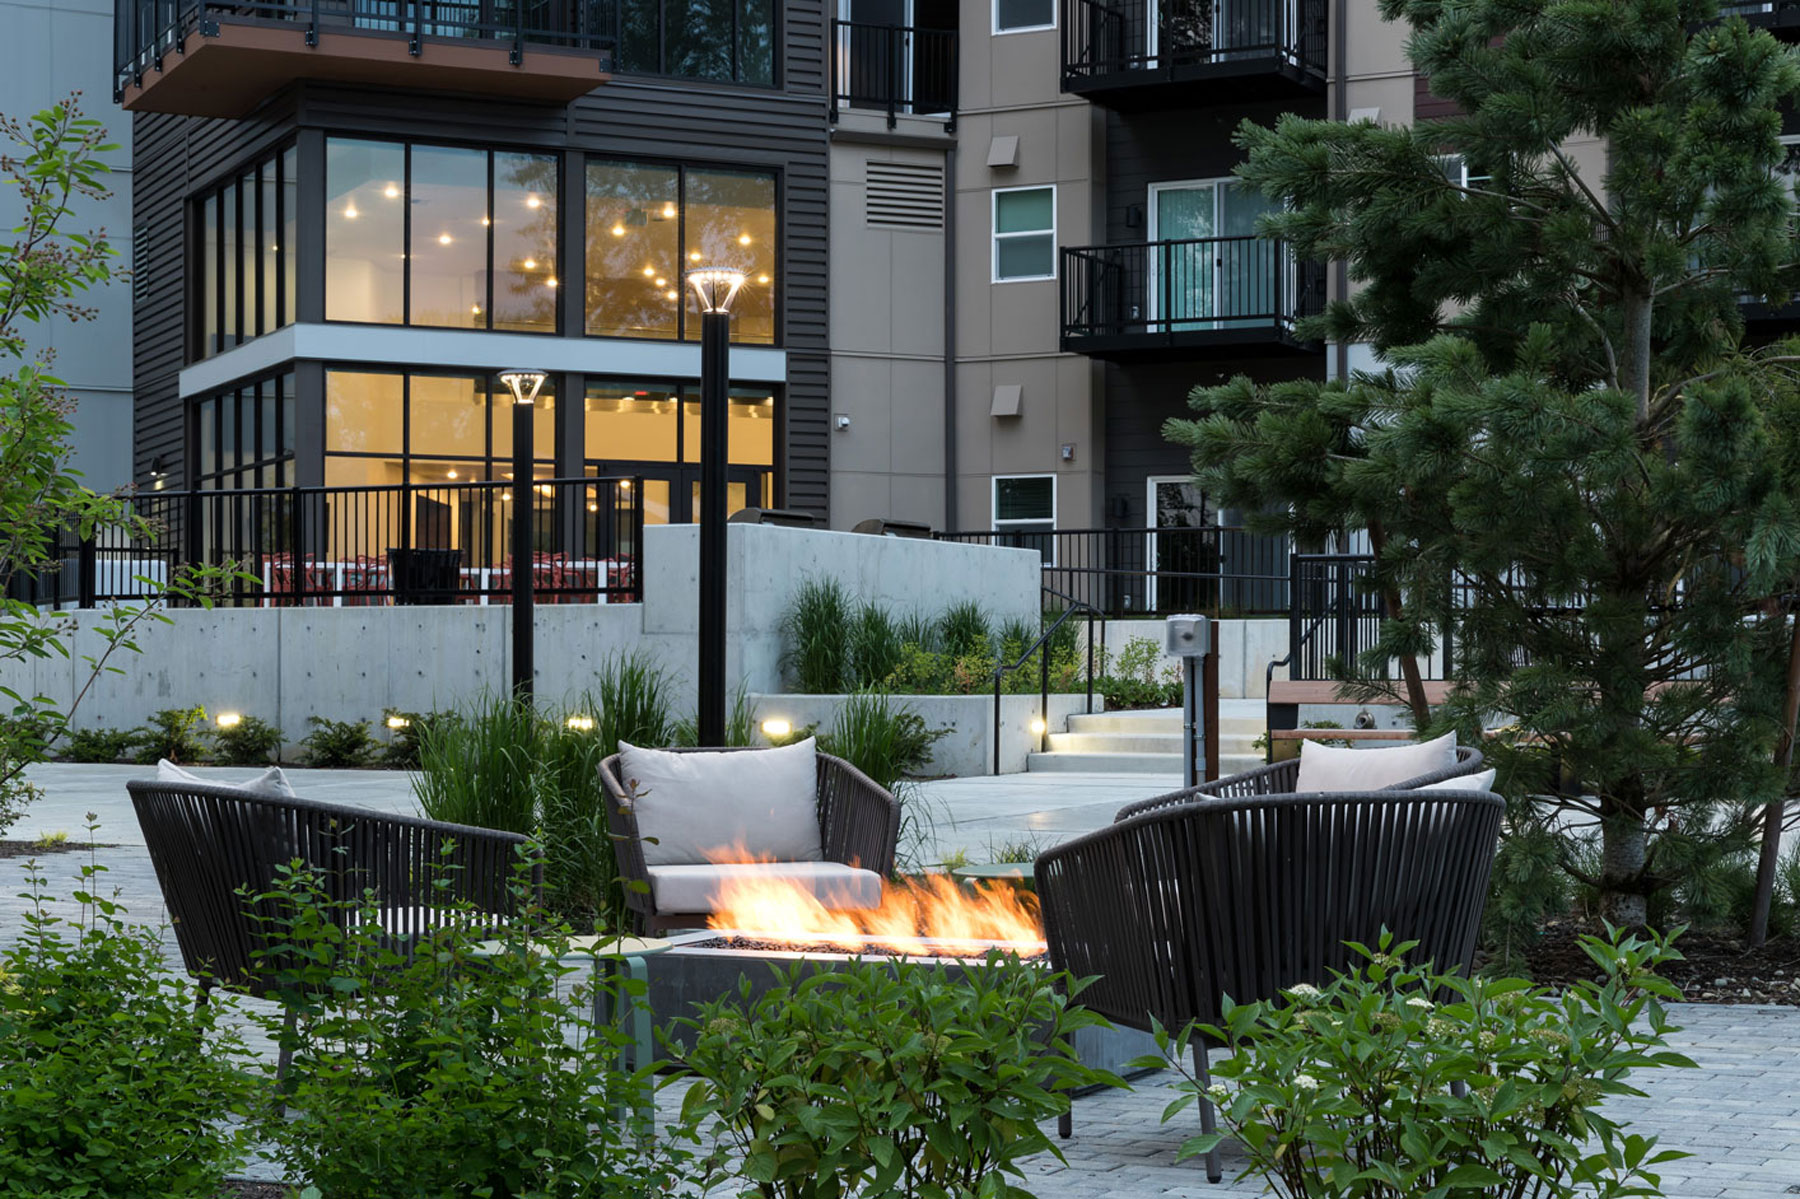 Dusk shot of the courtyard with fire pit, plush seating, green landscaping and apartment lobby in the background